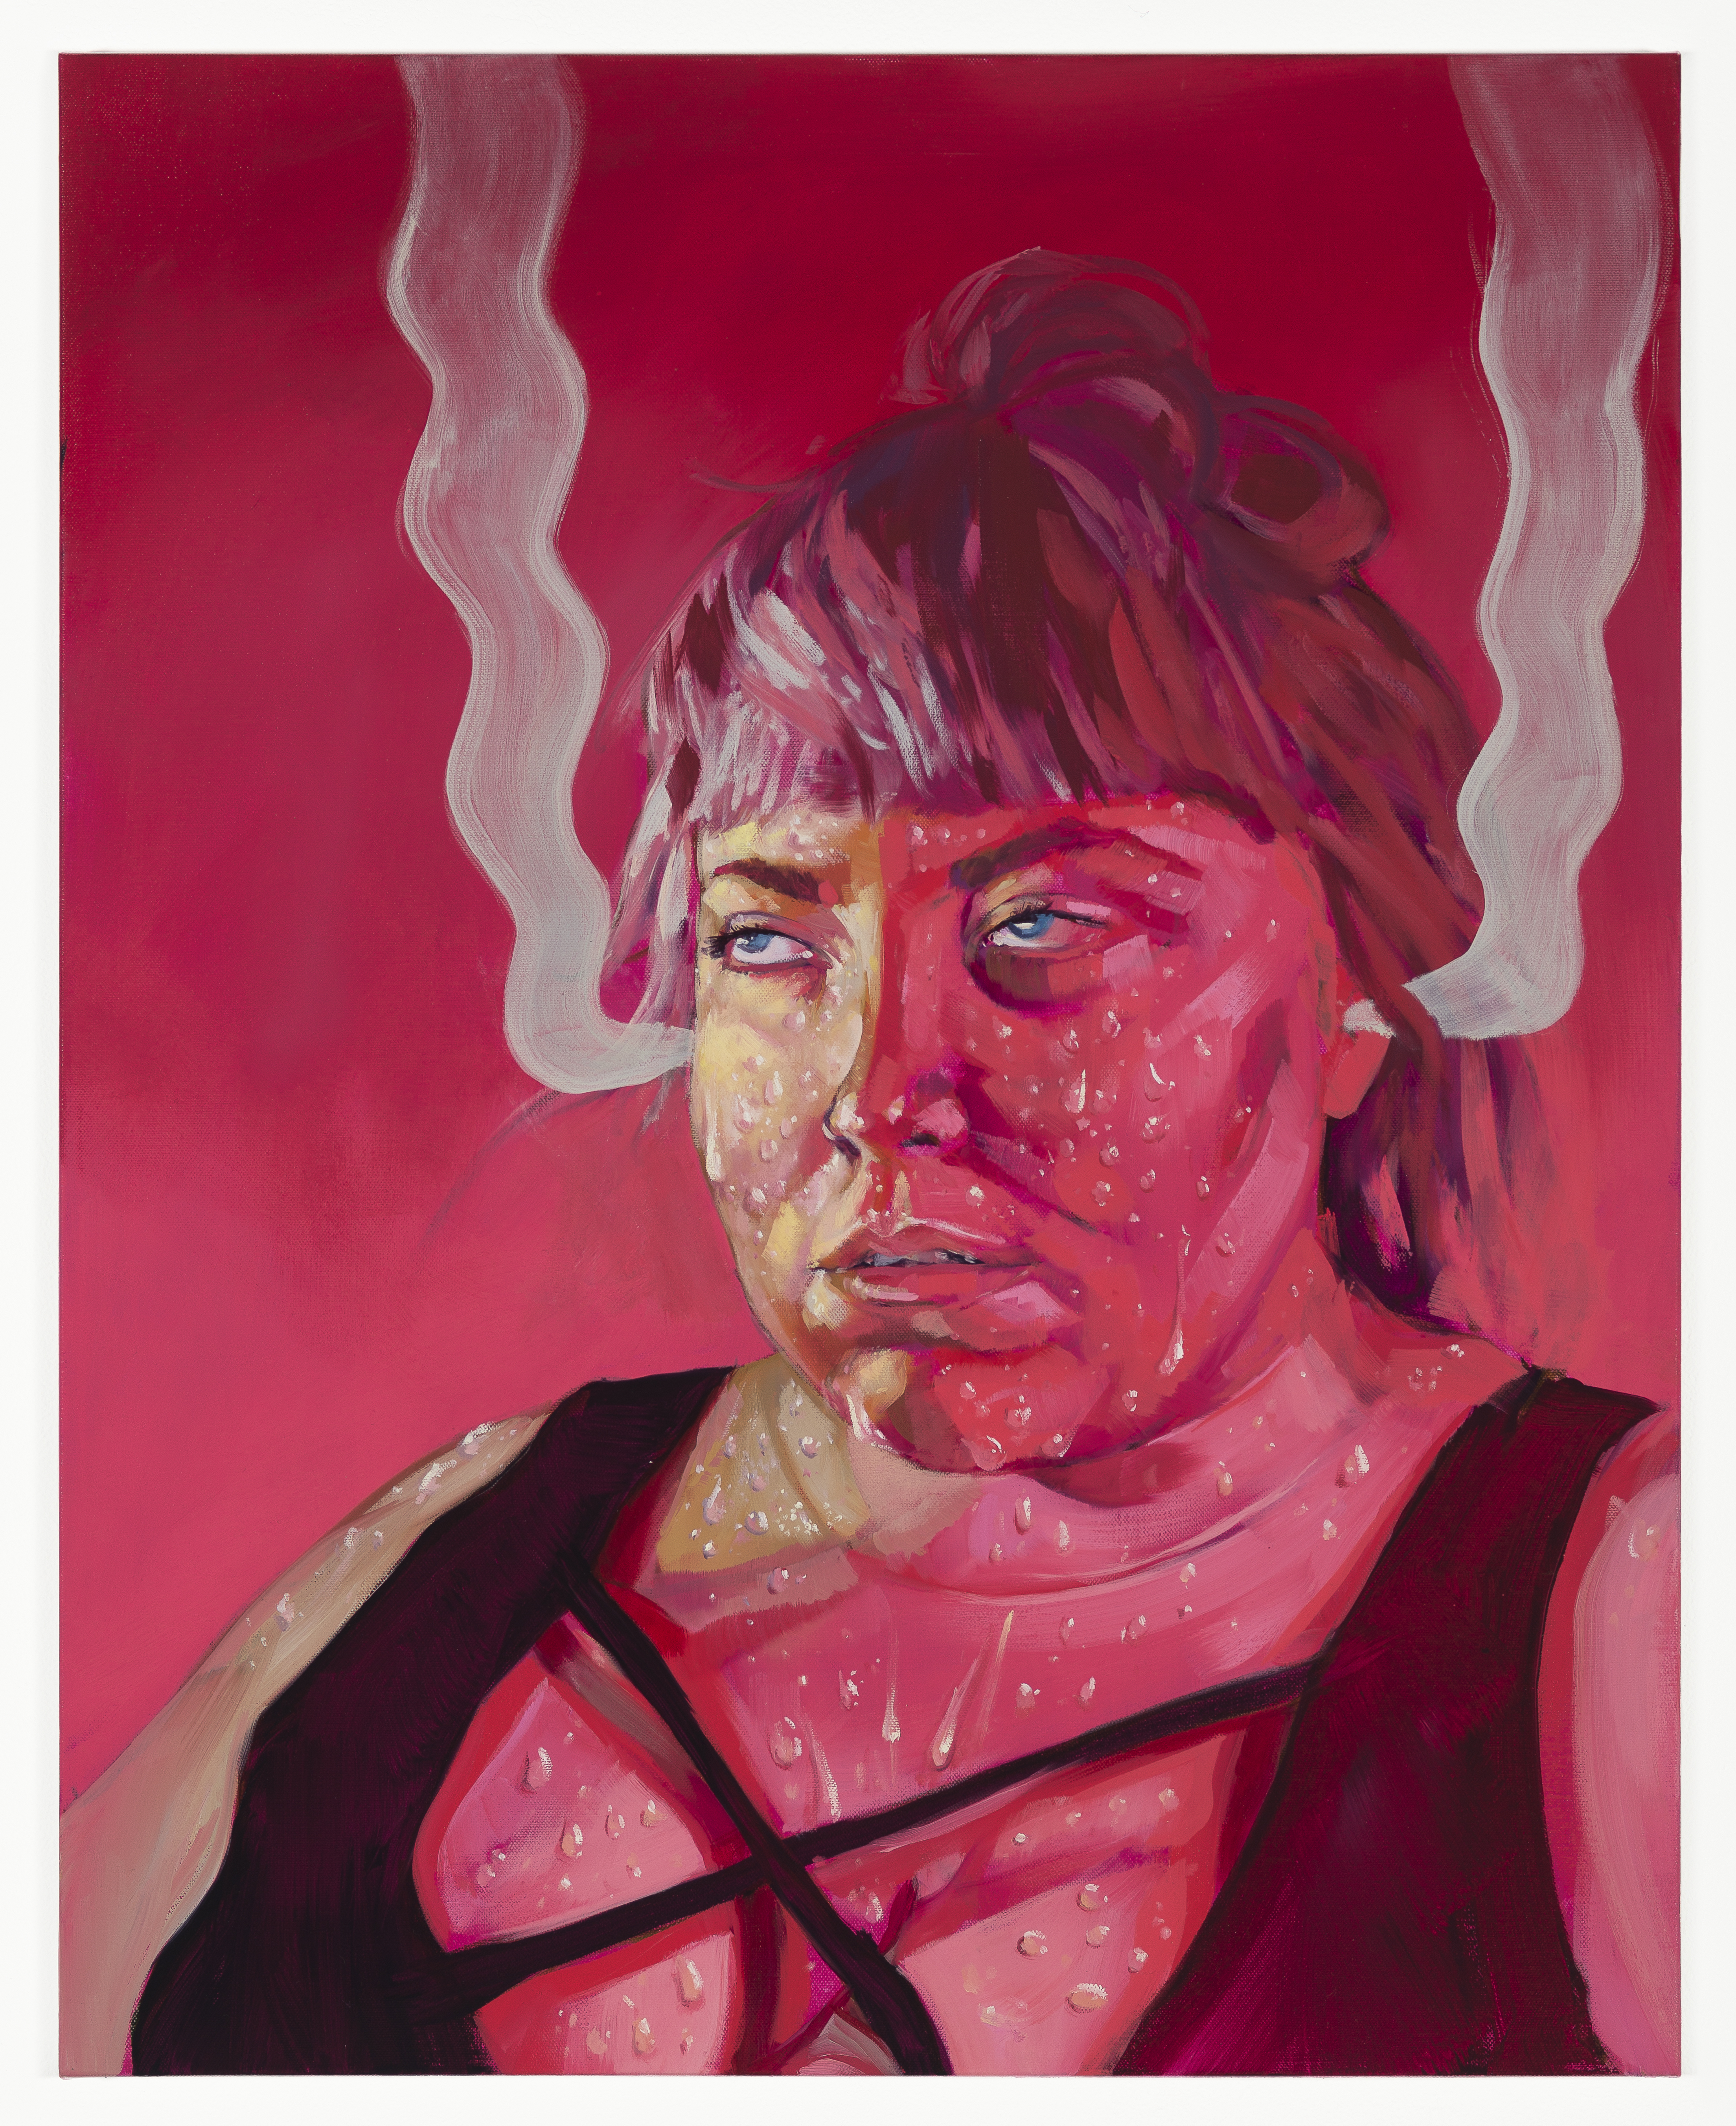 painting, portrait, self portrait, sweat, fumes, steam, pink, figurative painting, color, pattern